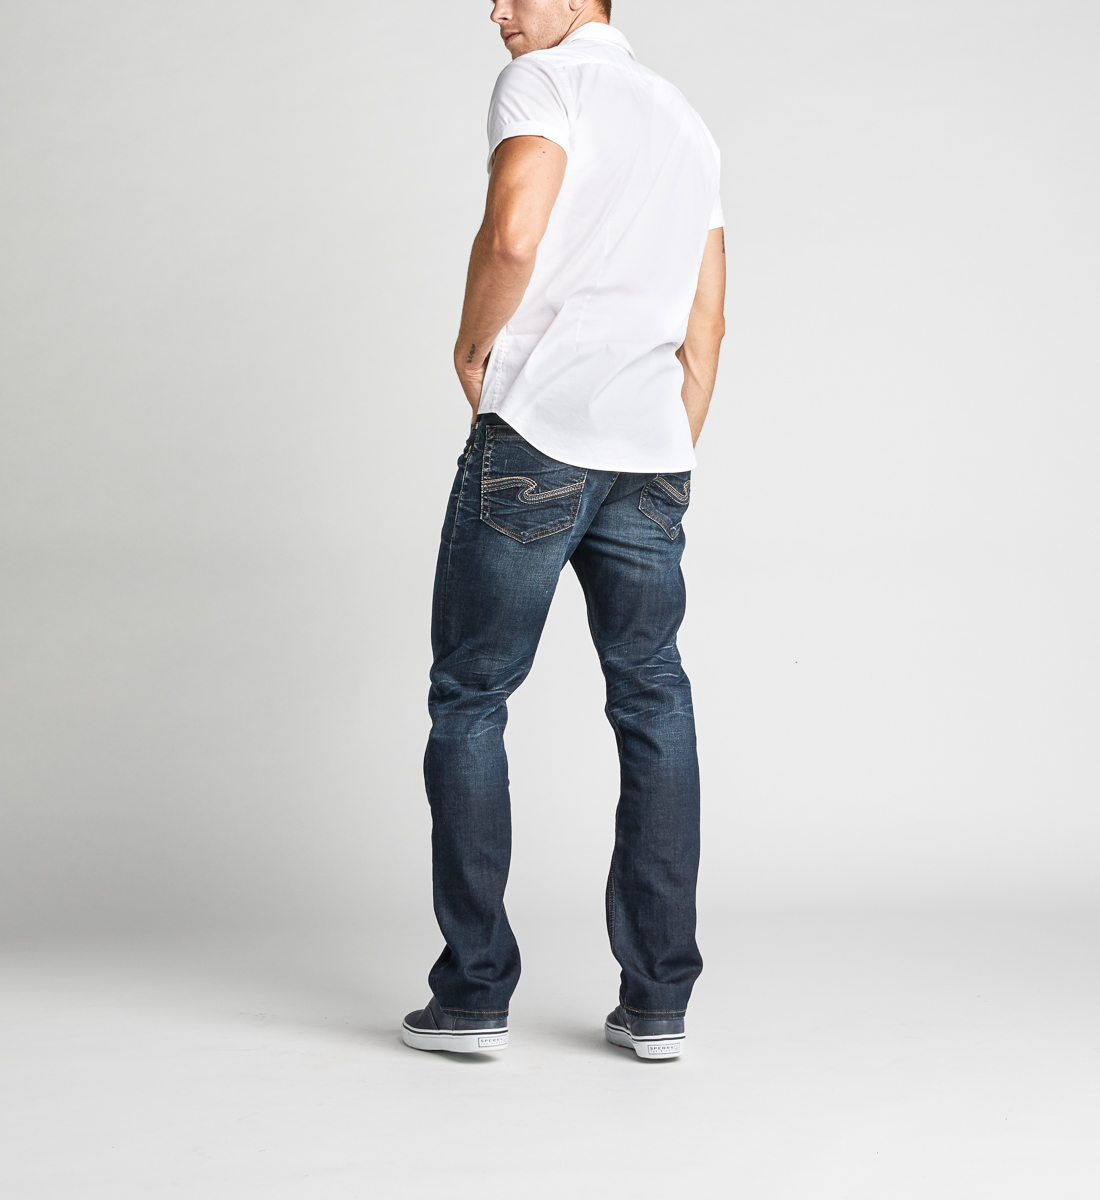 Grayson Easy Fit Straight Leg Jeans, , hi-res